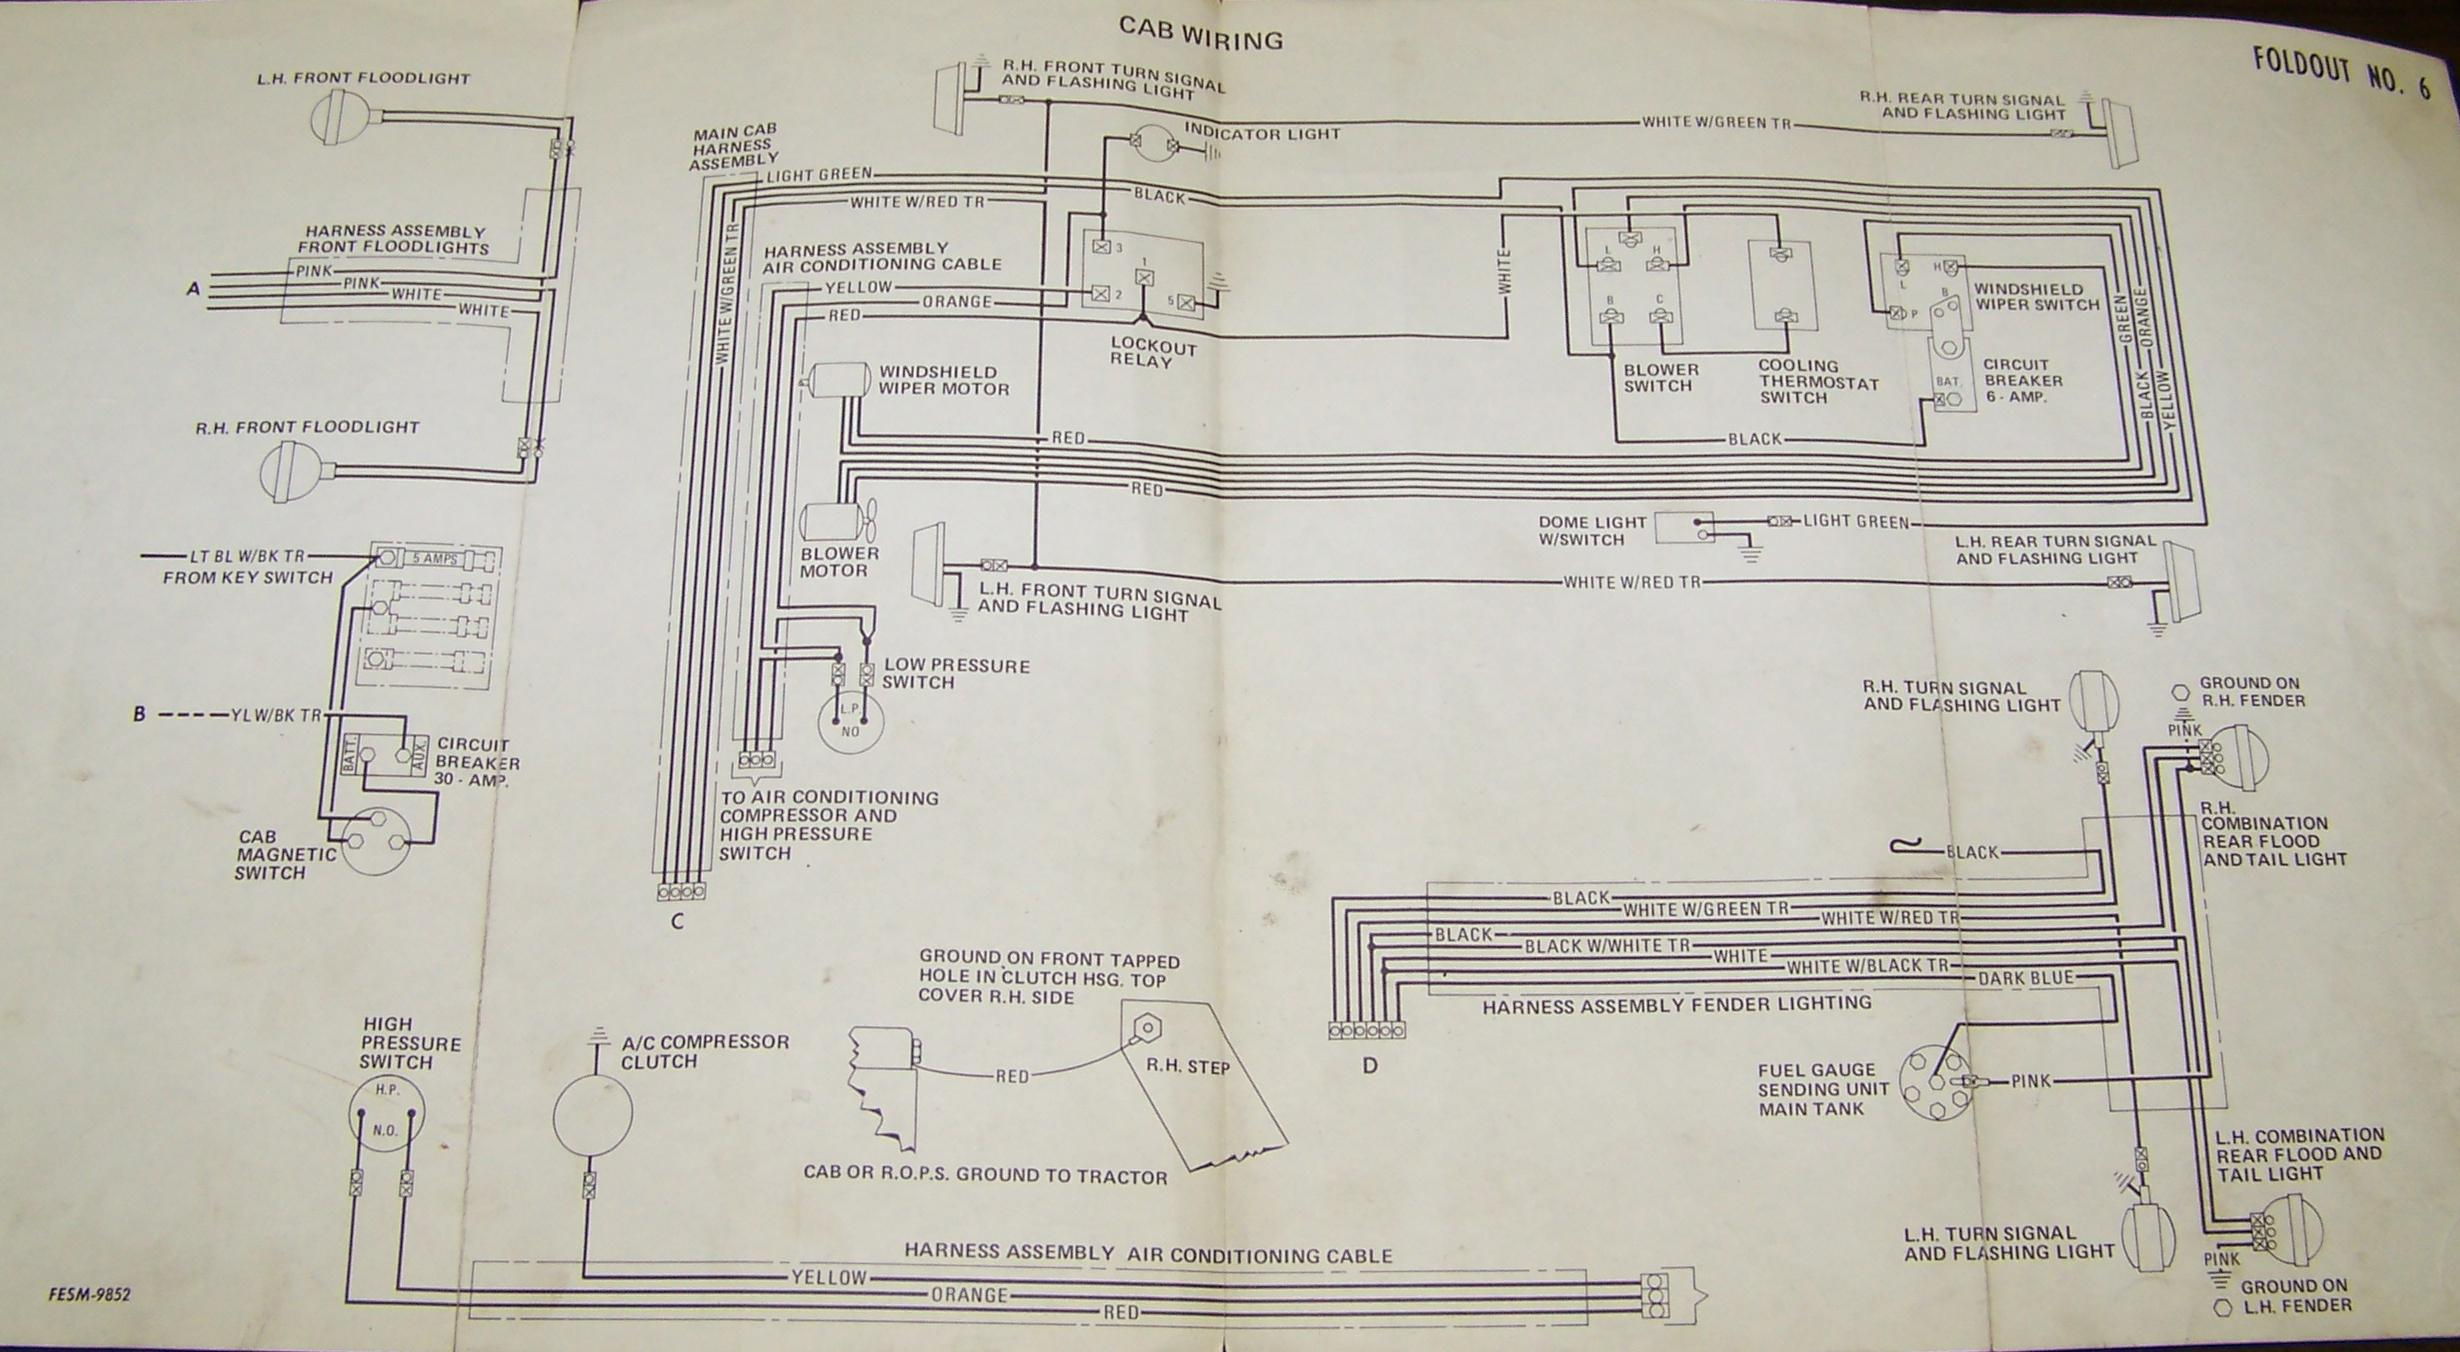 Light Wiring Diagram Ih 504 Another Blog About Monotrol Pedal Carter Gruenewald Co Inc Farmall Tractor Electrical Rh Cngco Com